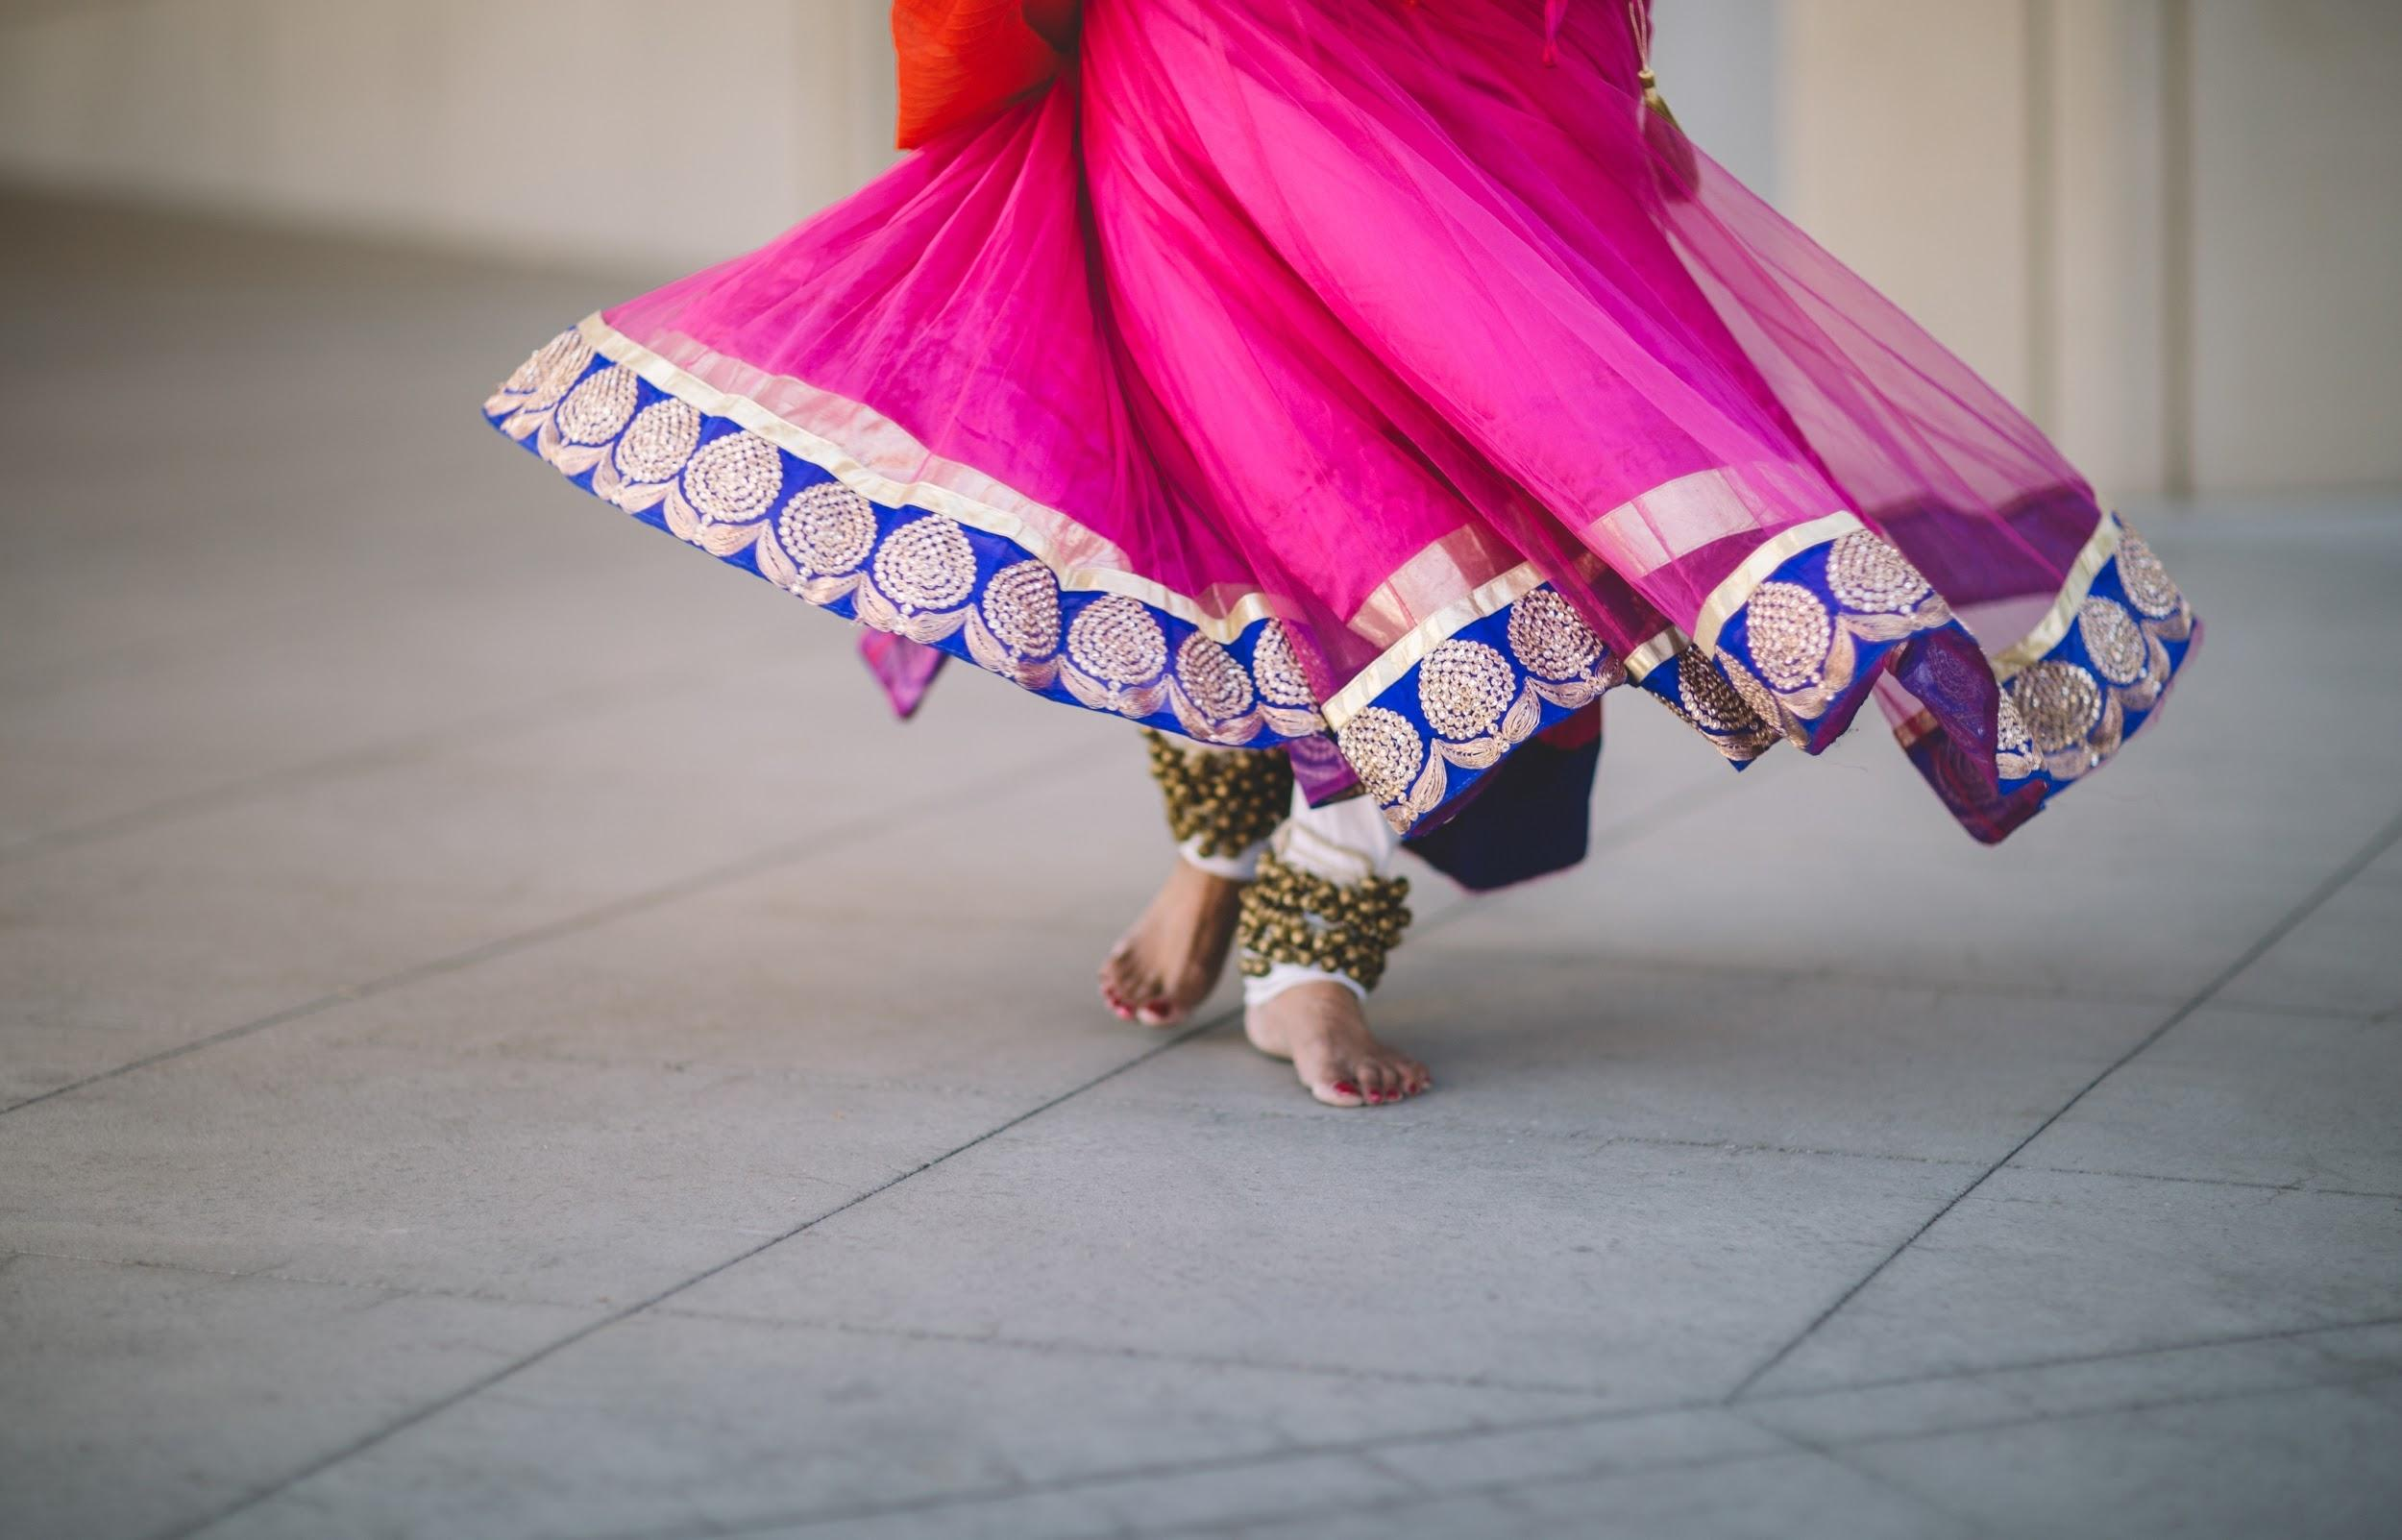 Girl's Feet in India Dancing